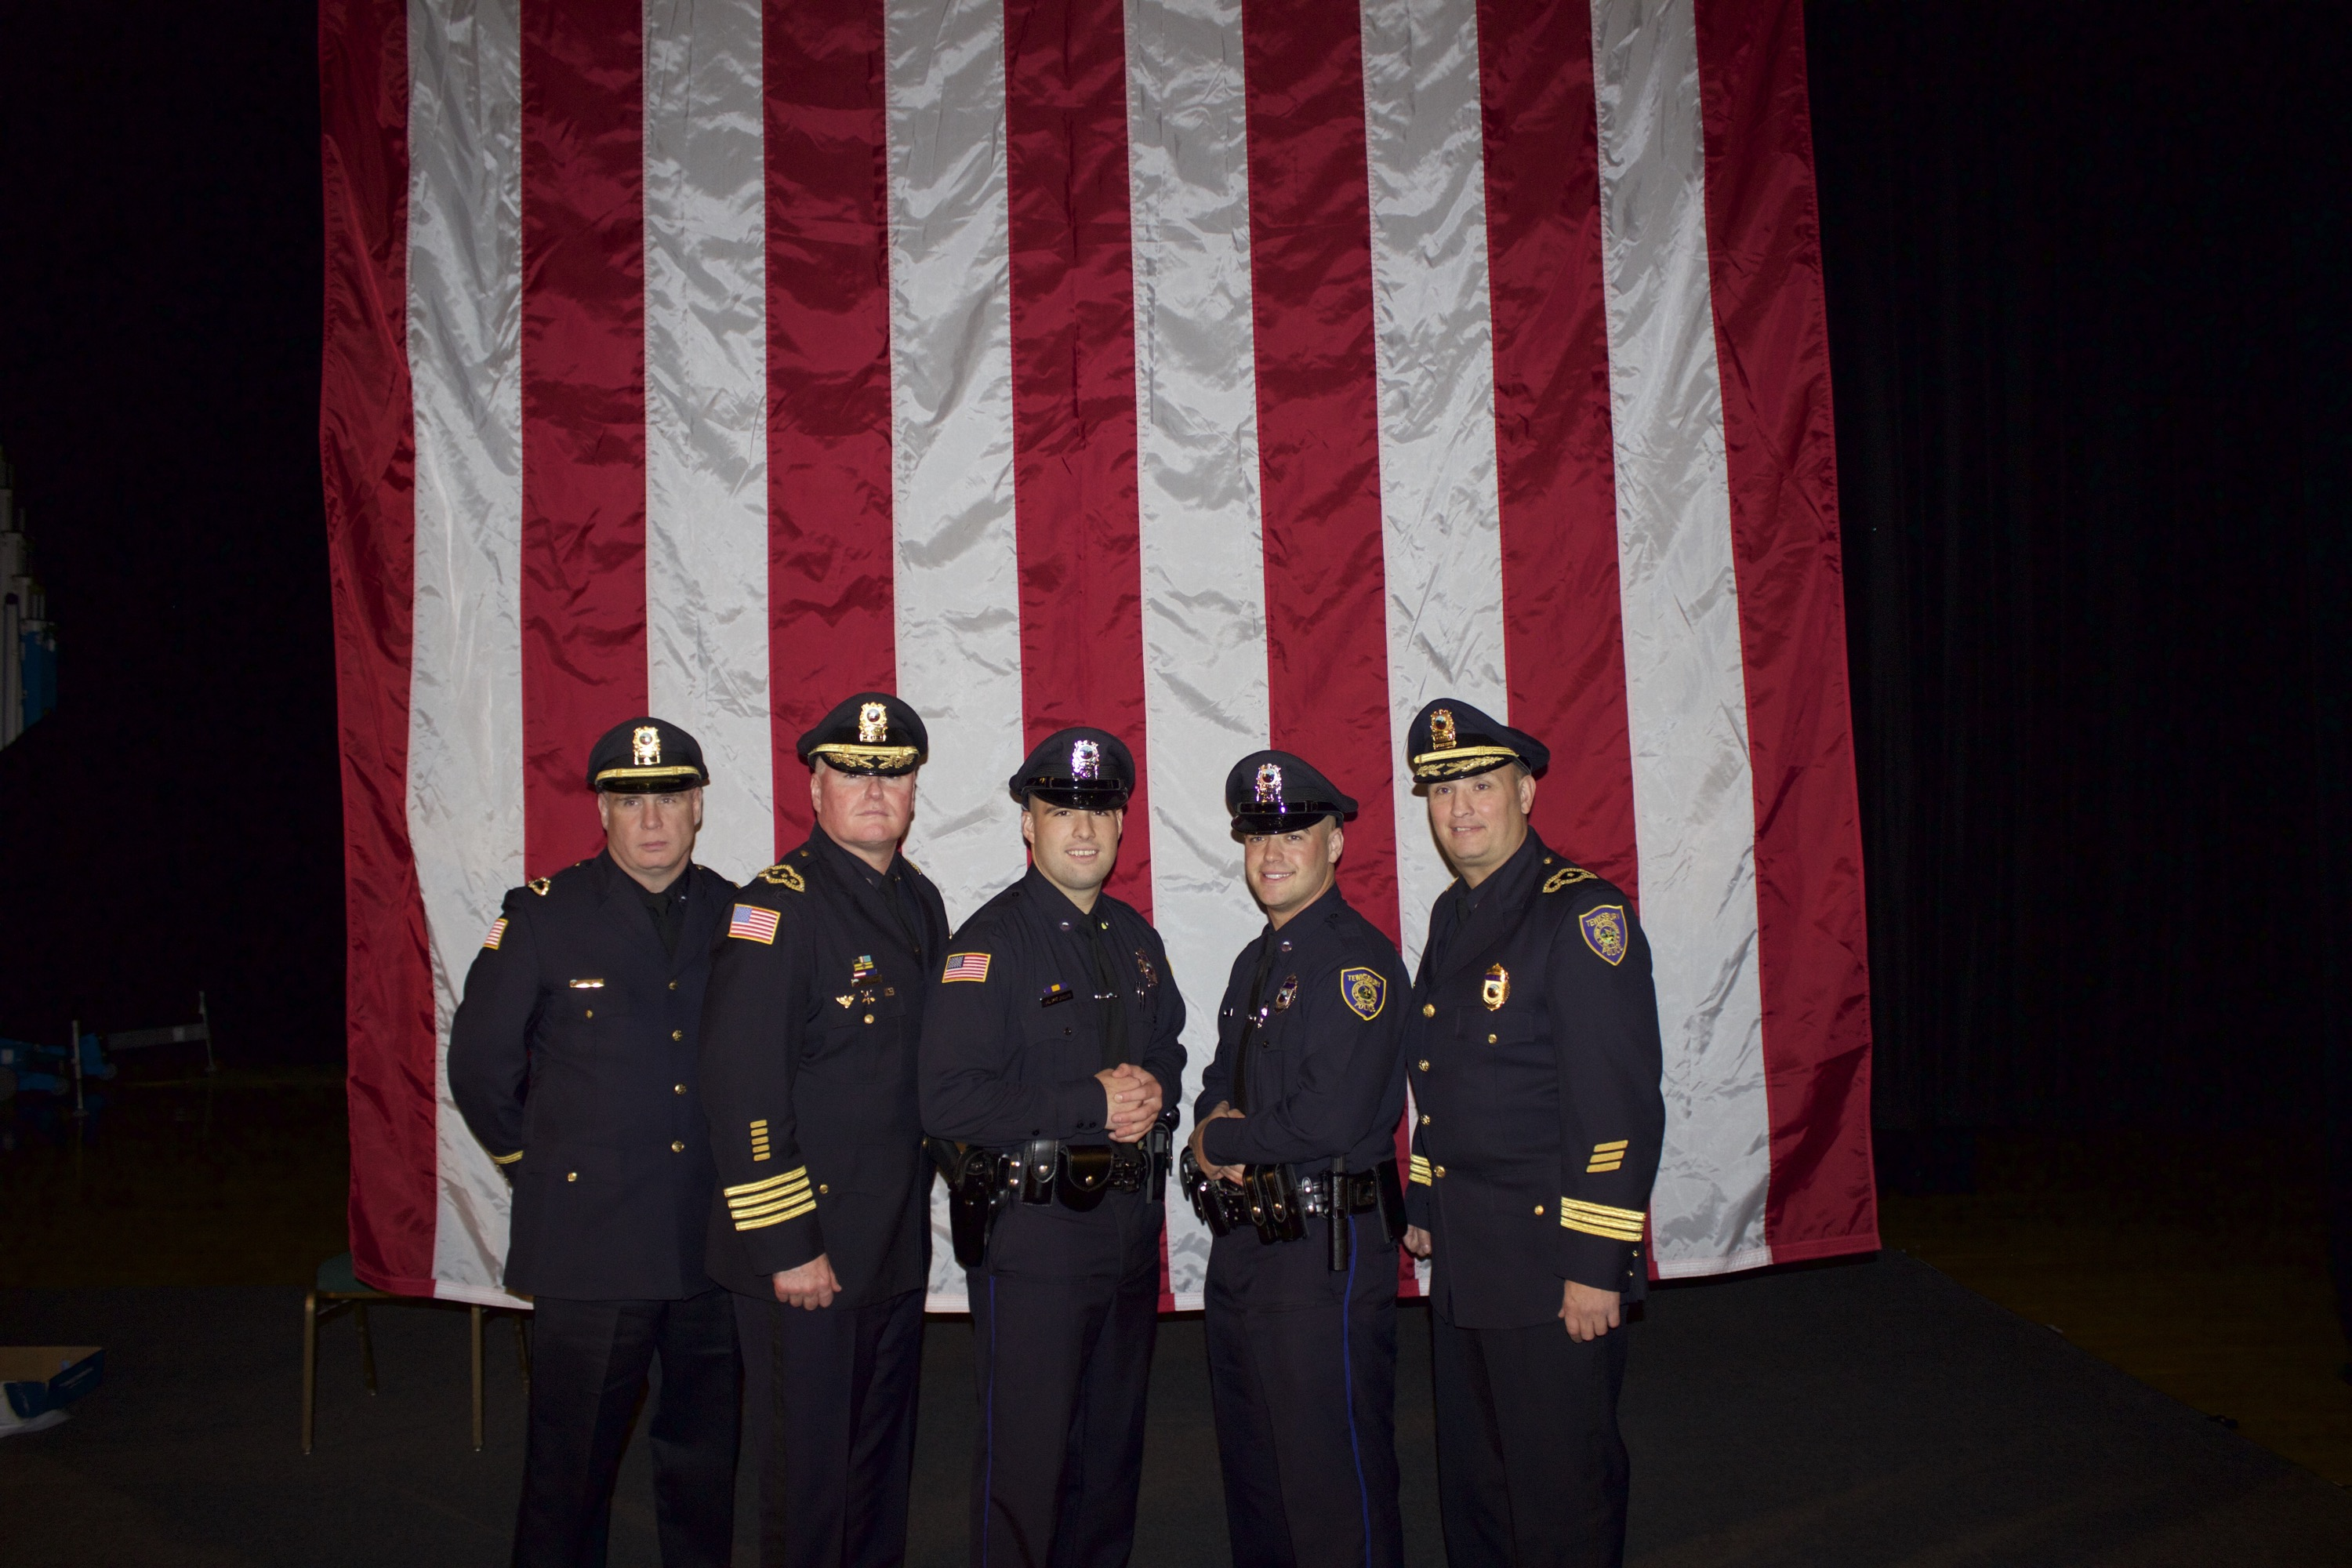 Tewksbury Recruits Graduate from Lowell Police Academy